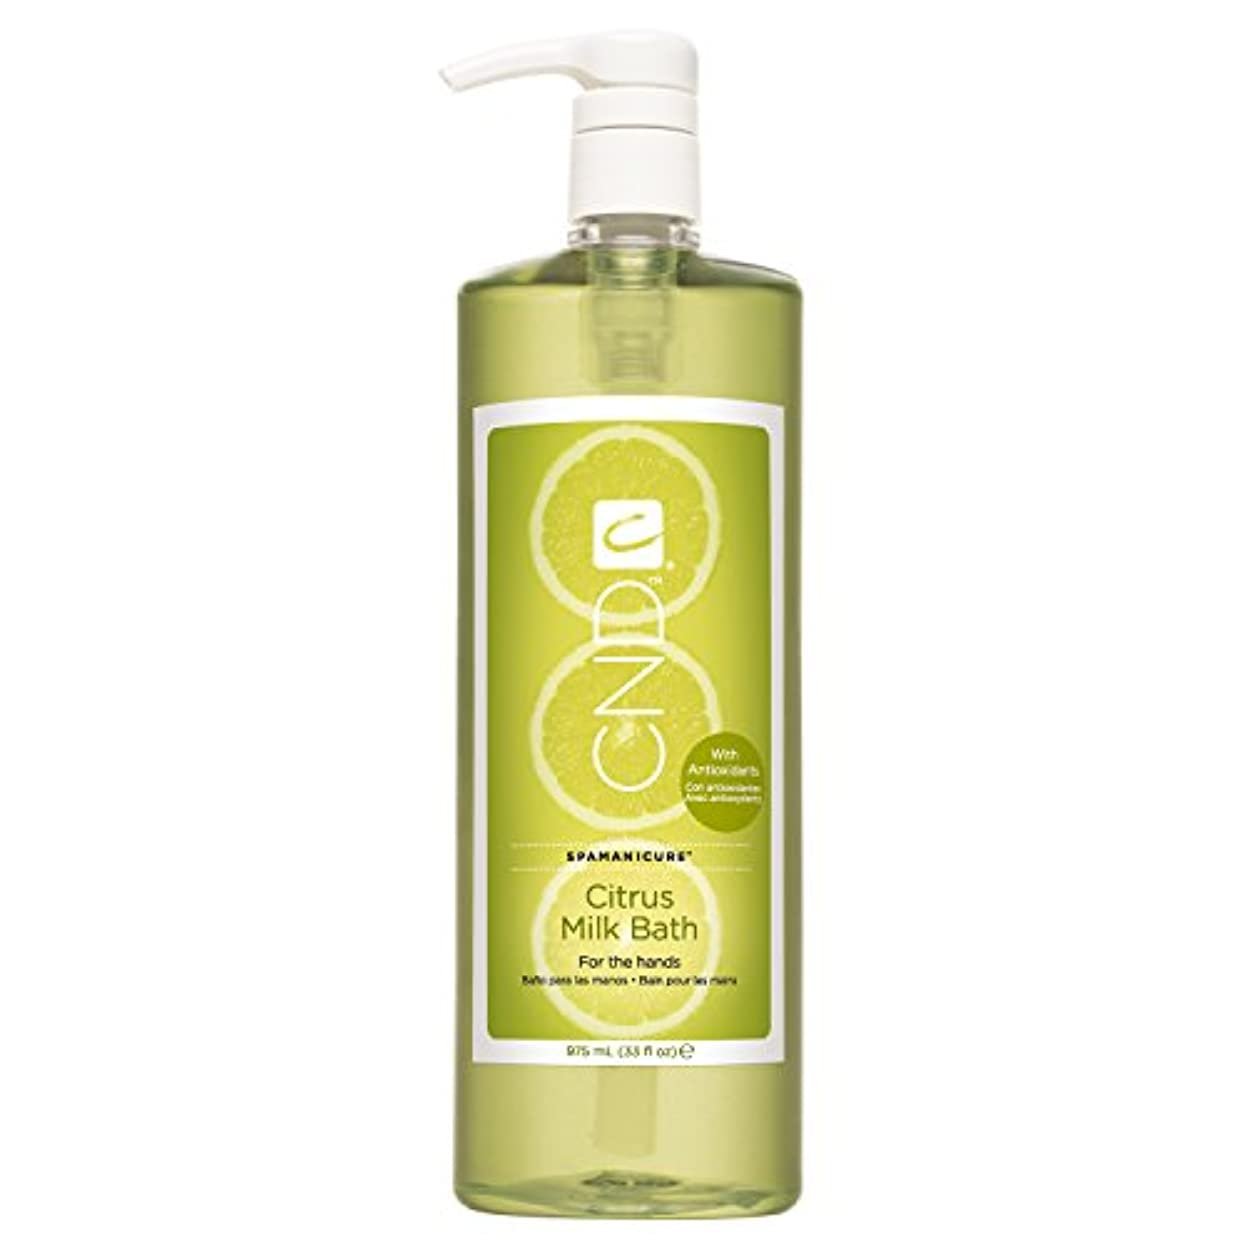 CND SpaManicure - Citrus Milk Bath - 33oz